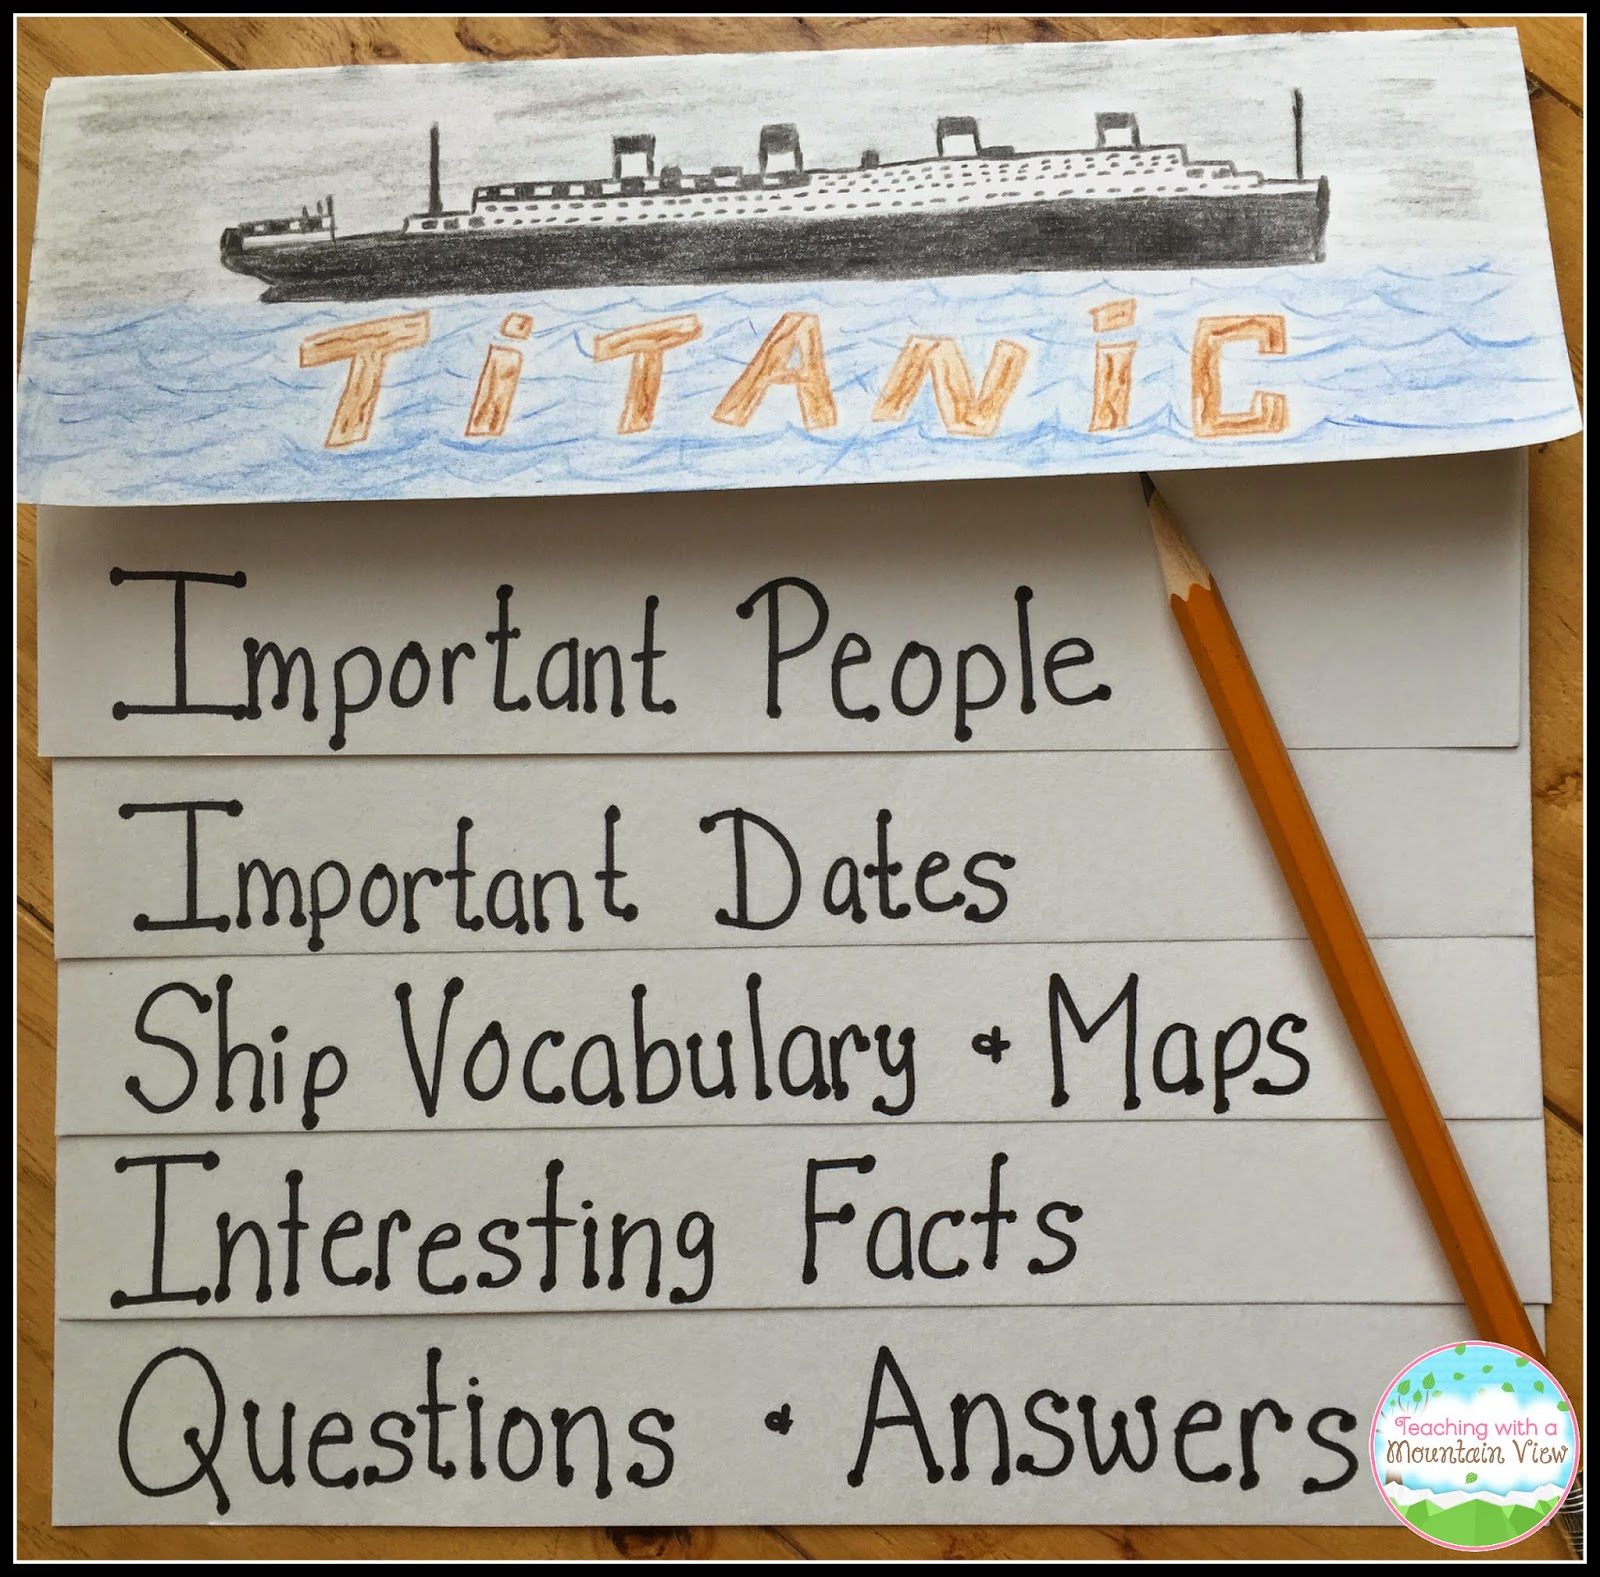 Teaching With A Mountain View Titanic Lessons